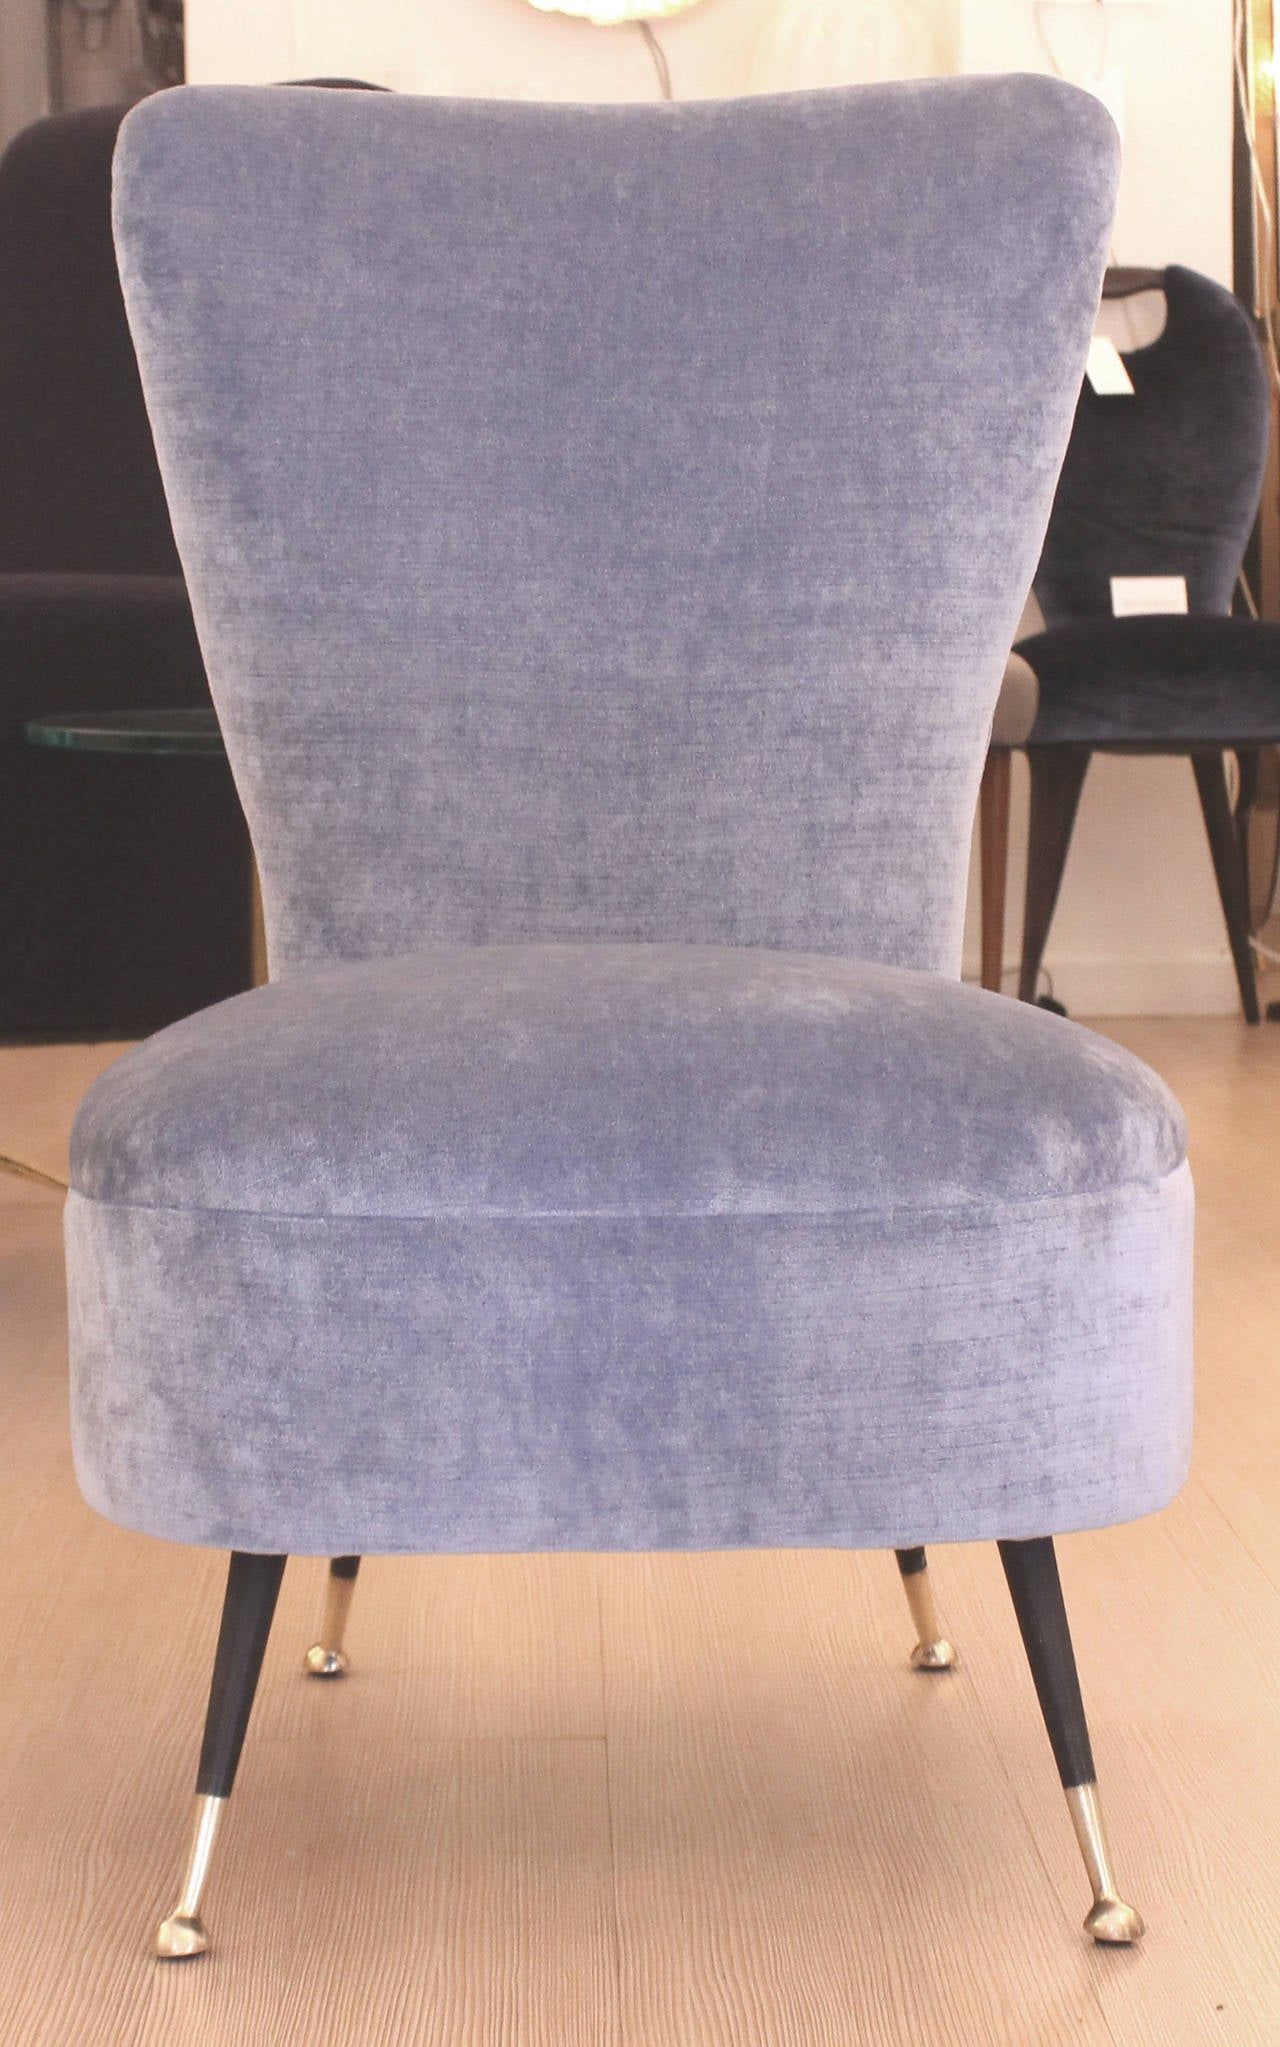 Blue Slipper Chair Elegant Pair Of Light Blue Slipper Chairs Italy 1960s